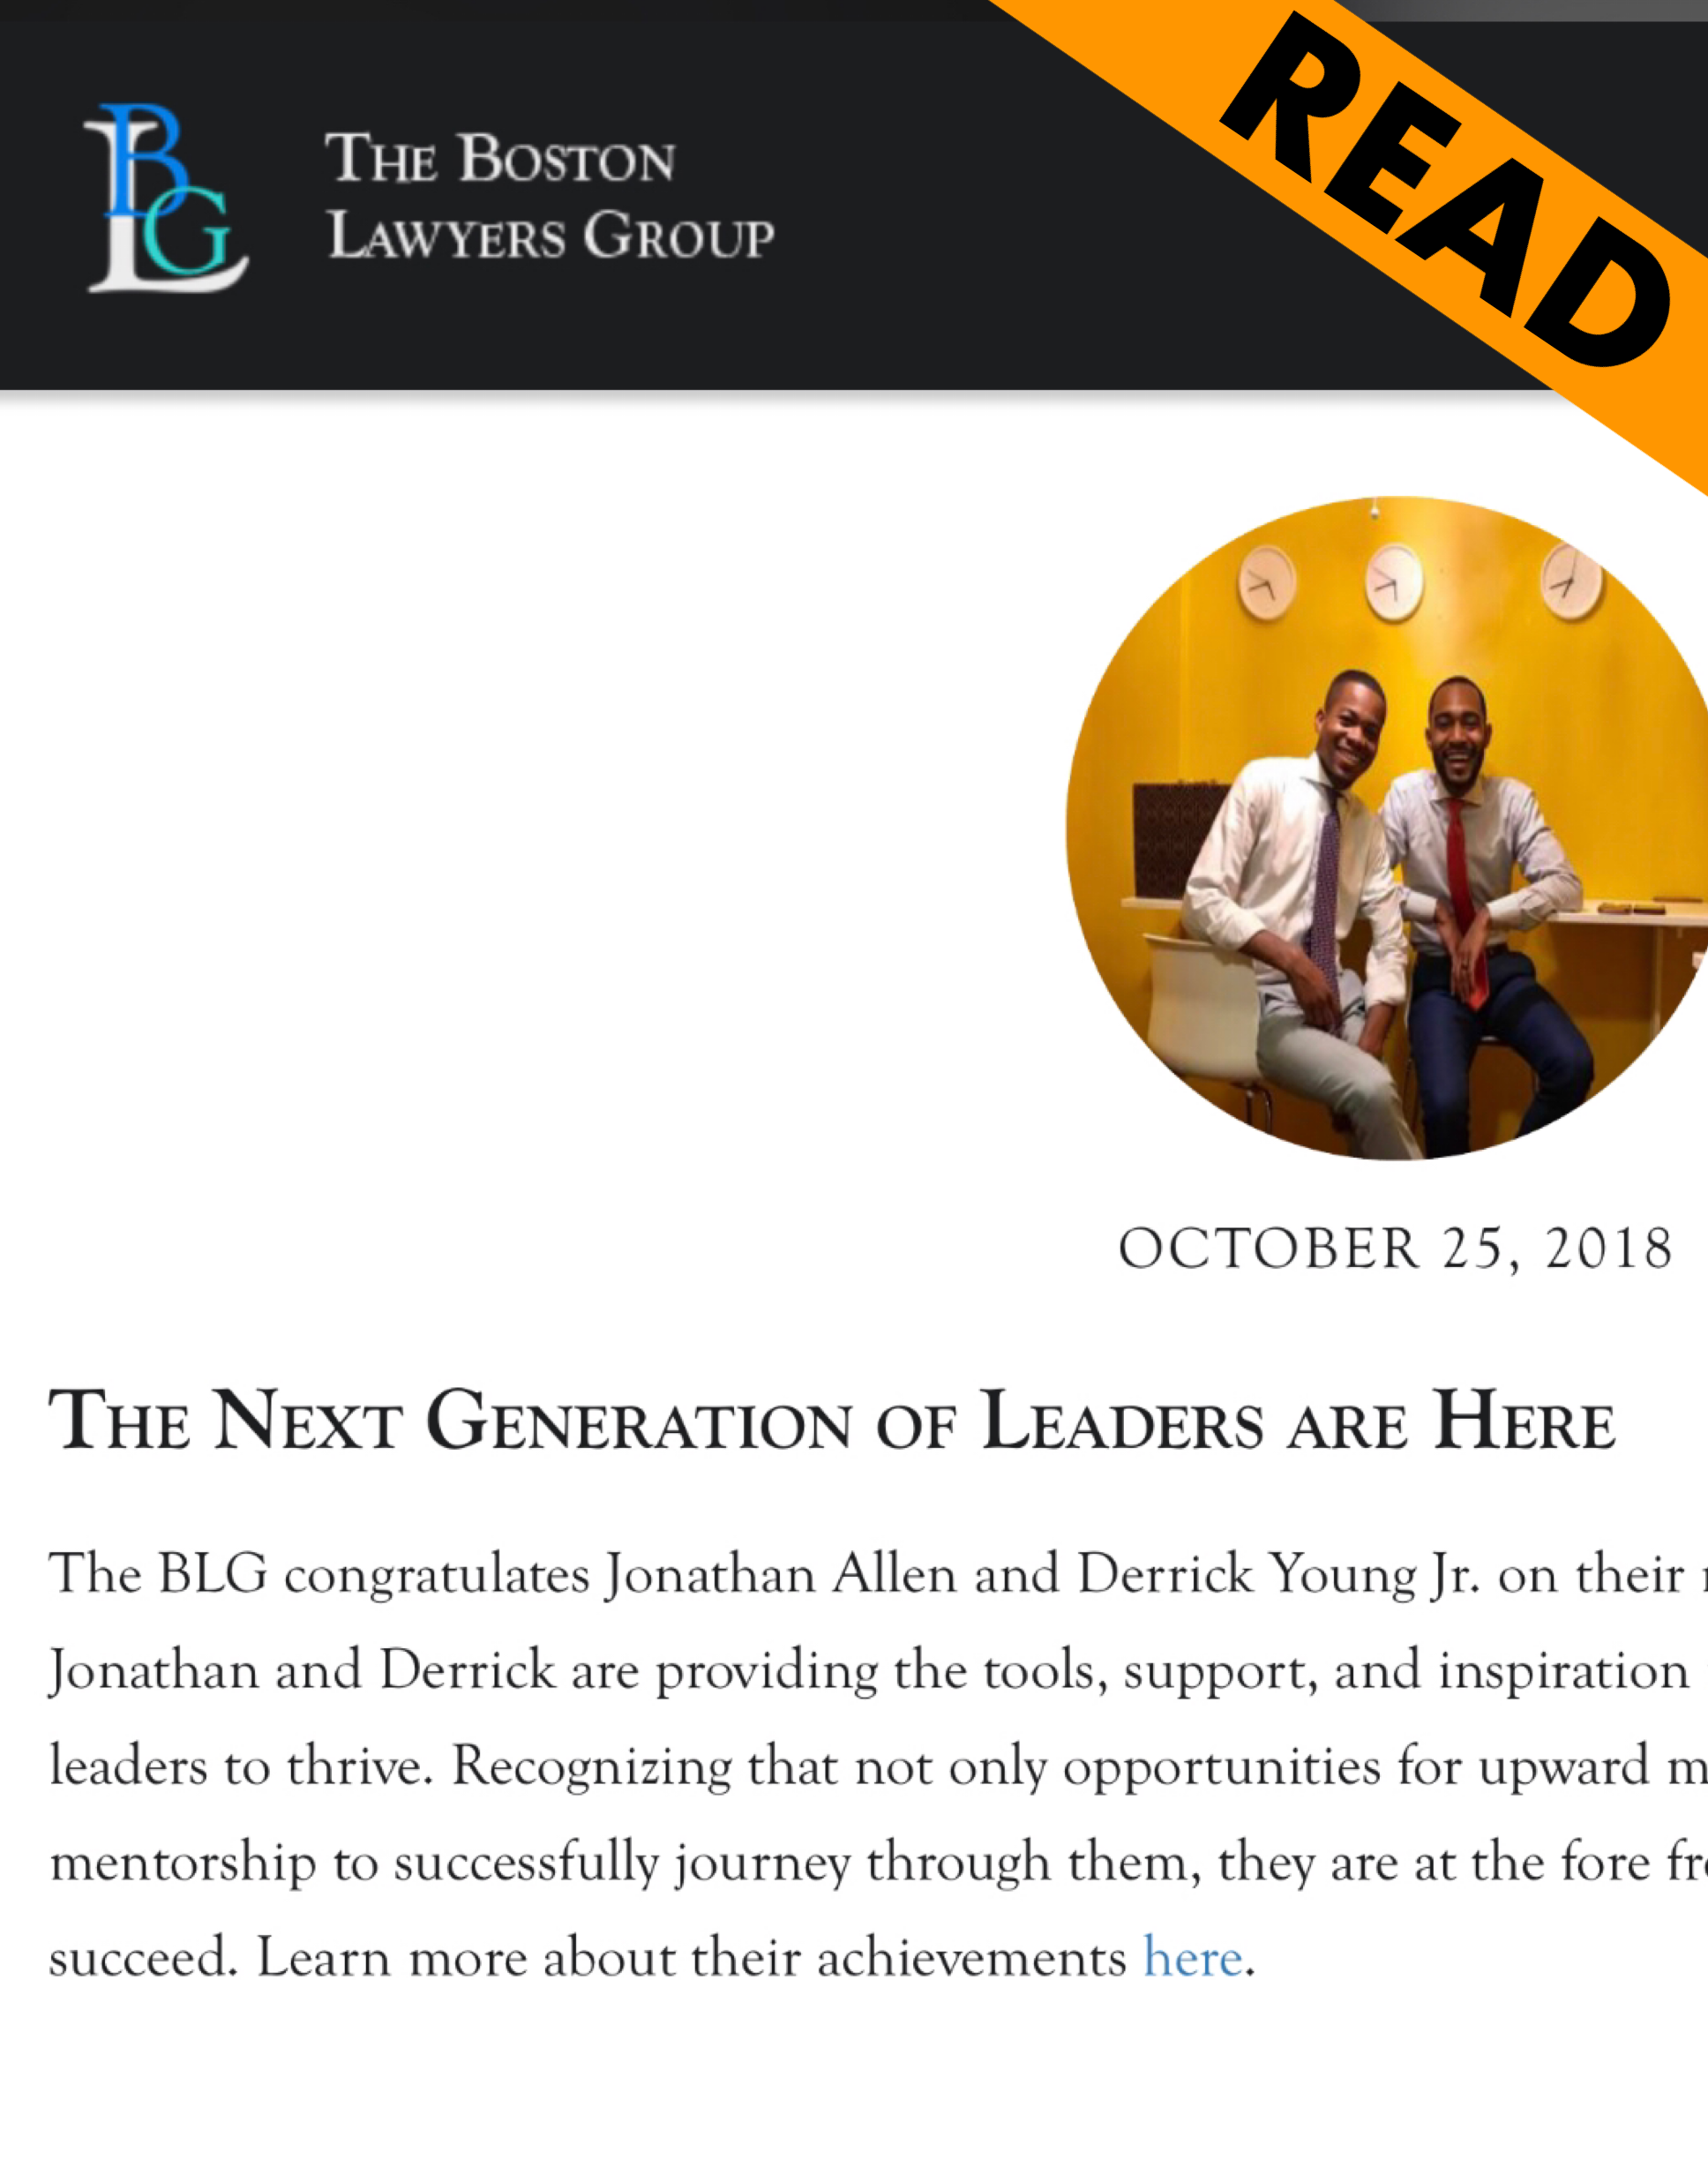 Next Generation of Leaders